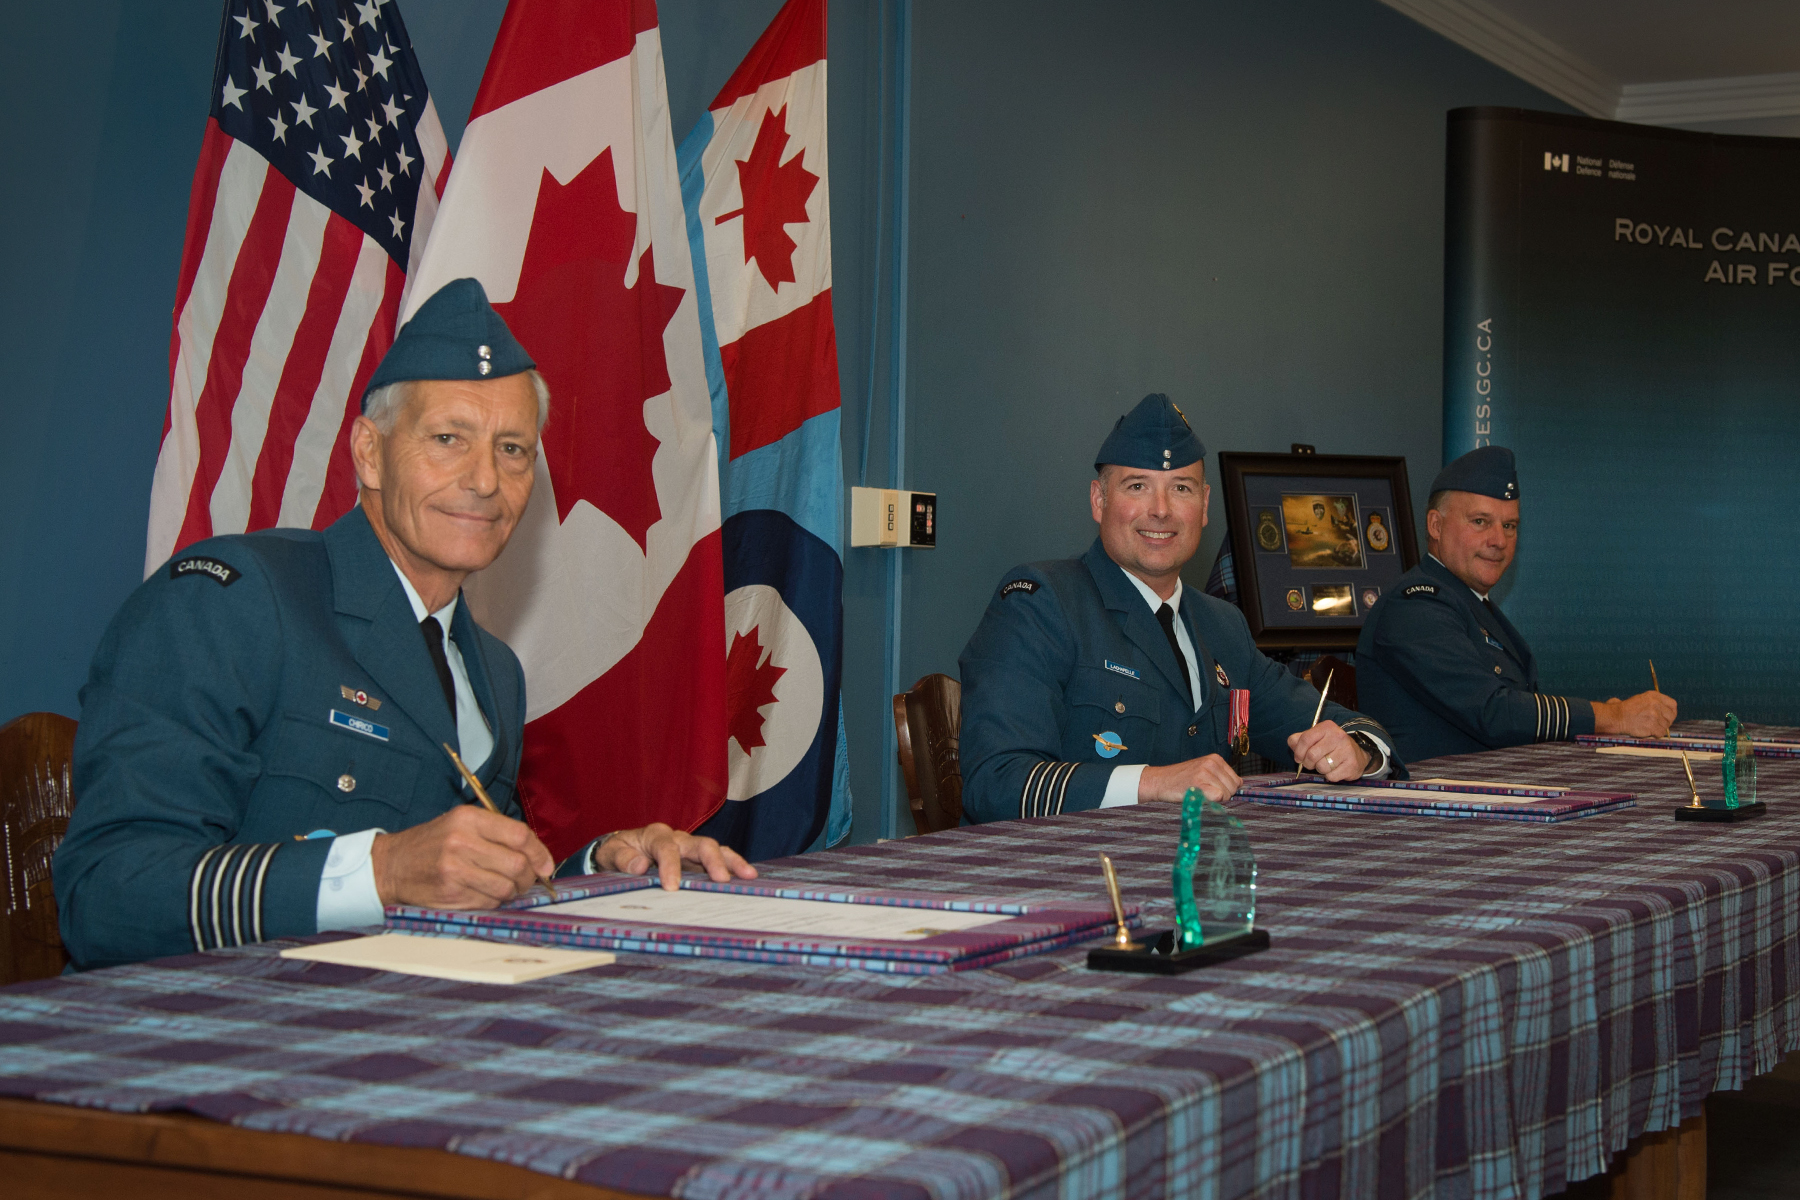 Three men wearing blue military uniforms and holding pens sit at a table covered with a tartan cloth on which there are documents. Behind the men are three flags.